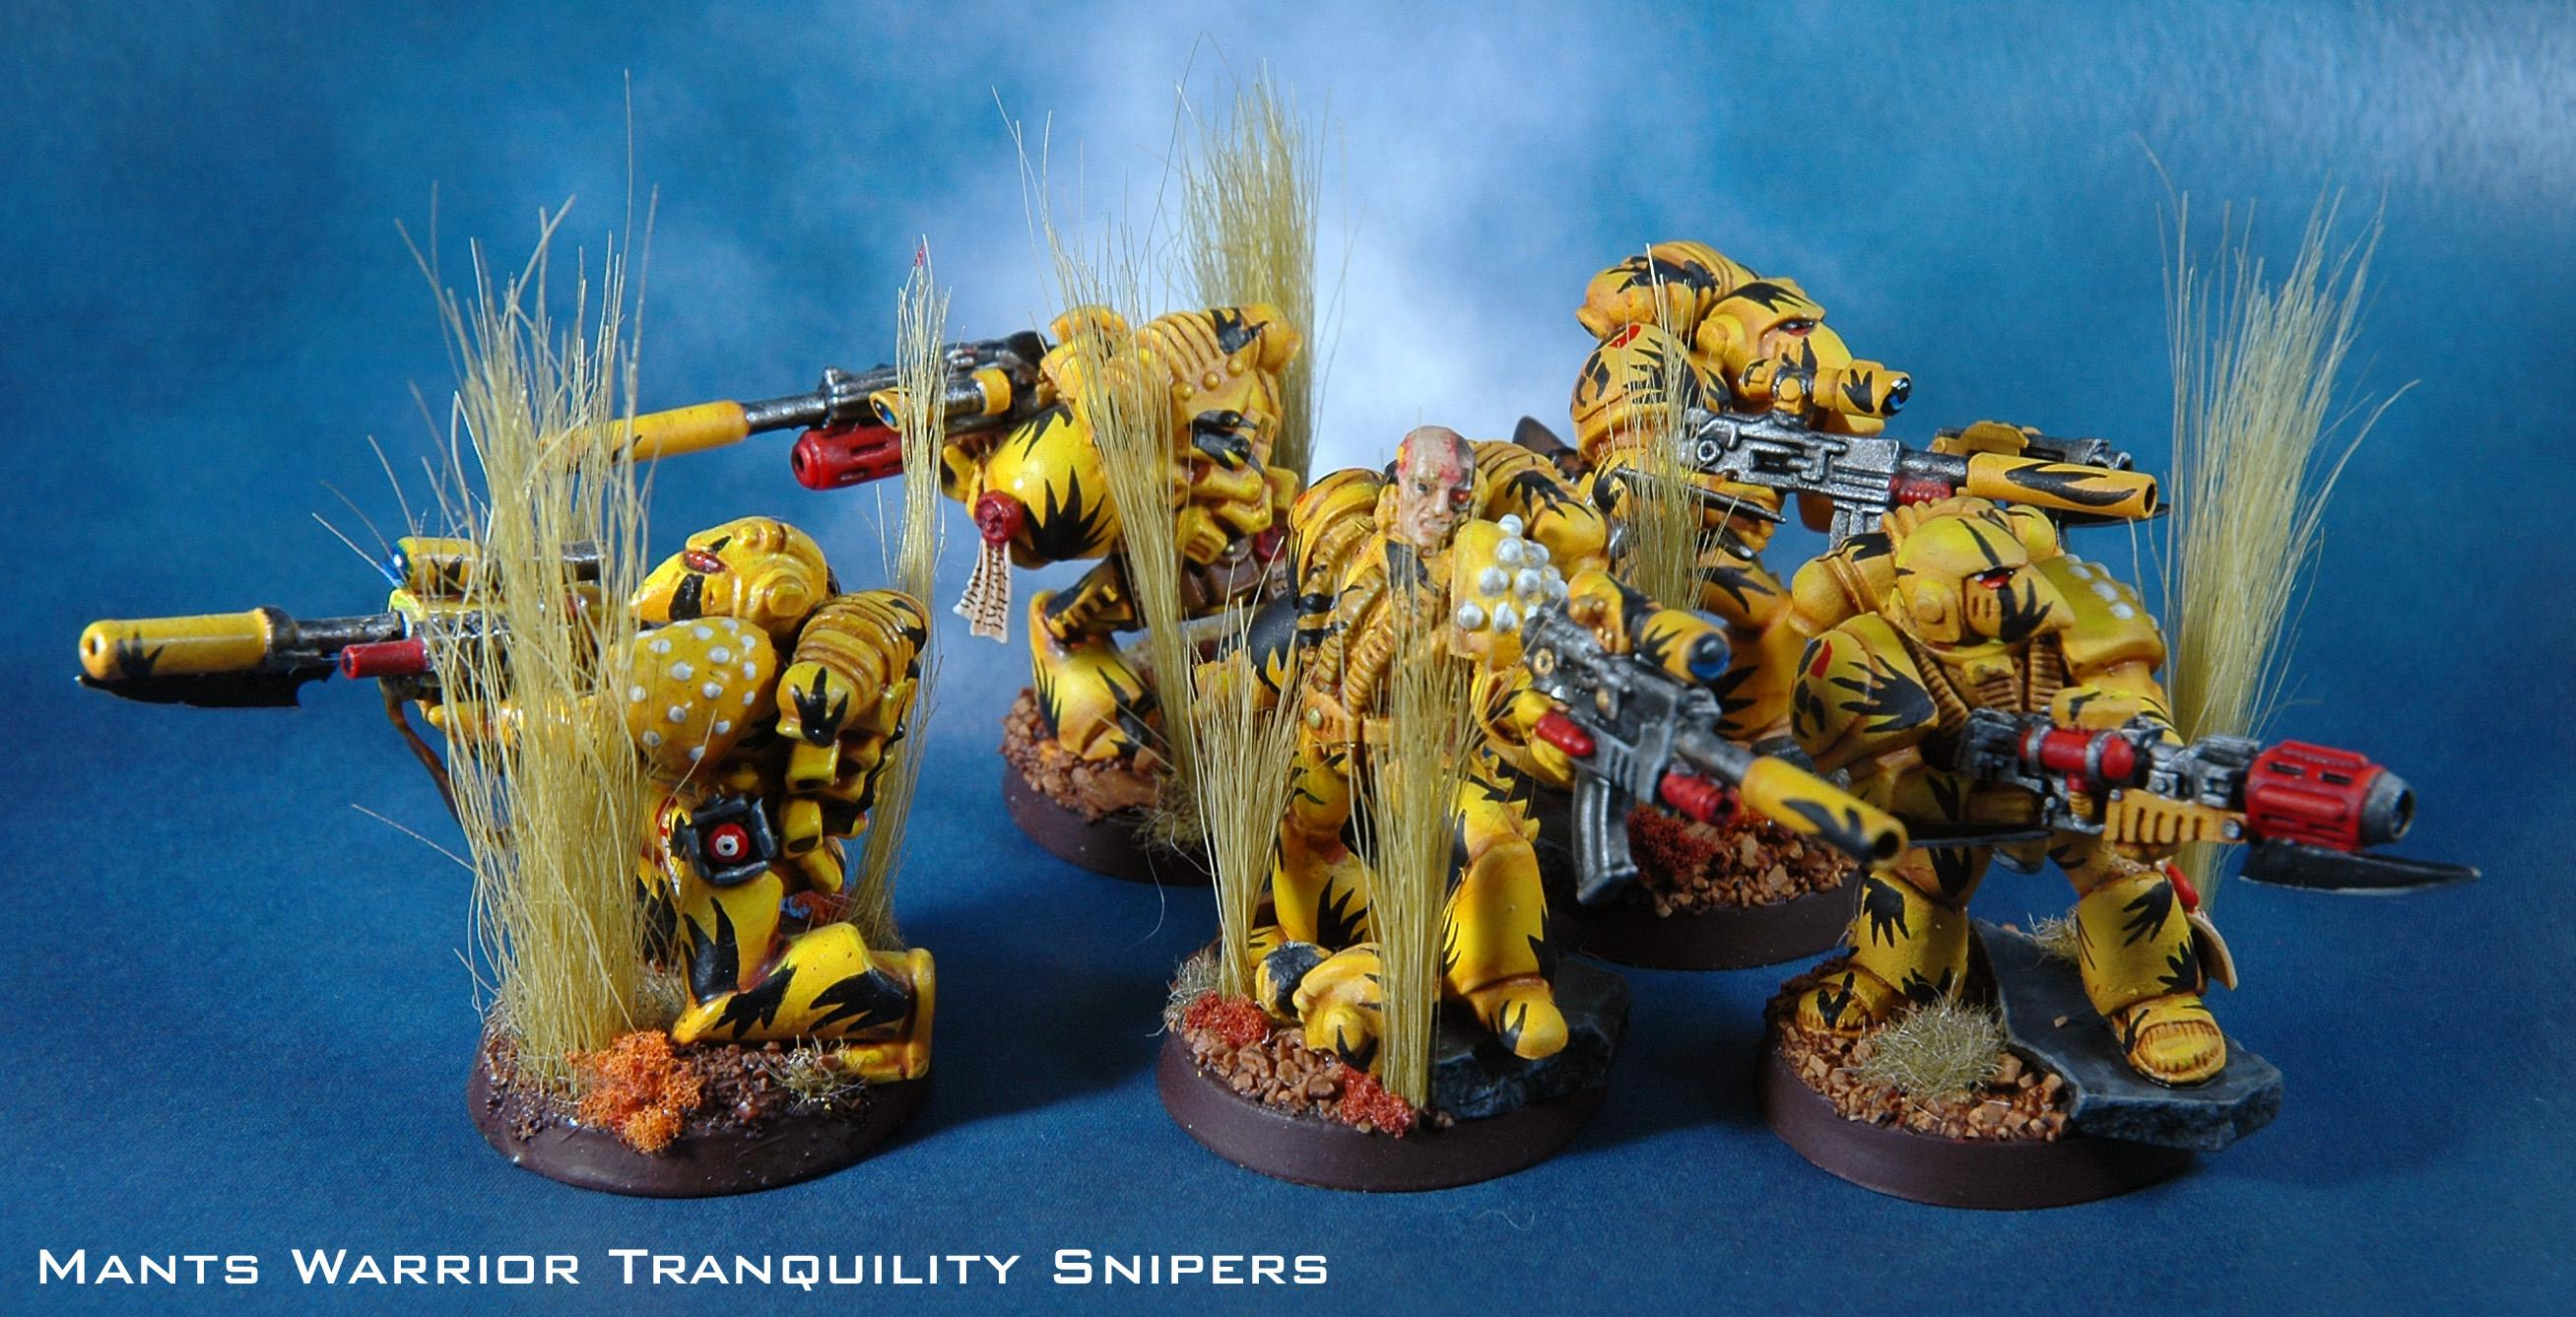 Mantis Warrior, Space Marines, Sternguard, Tranquility Snipers, Warhammer 40,000